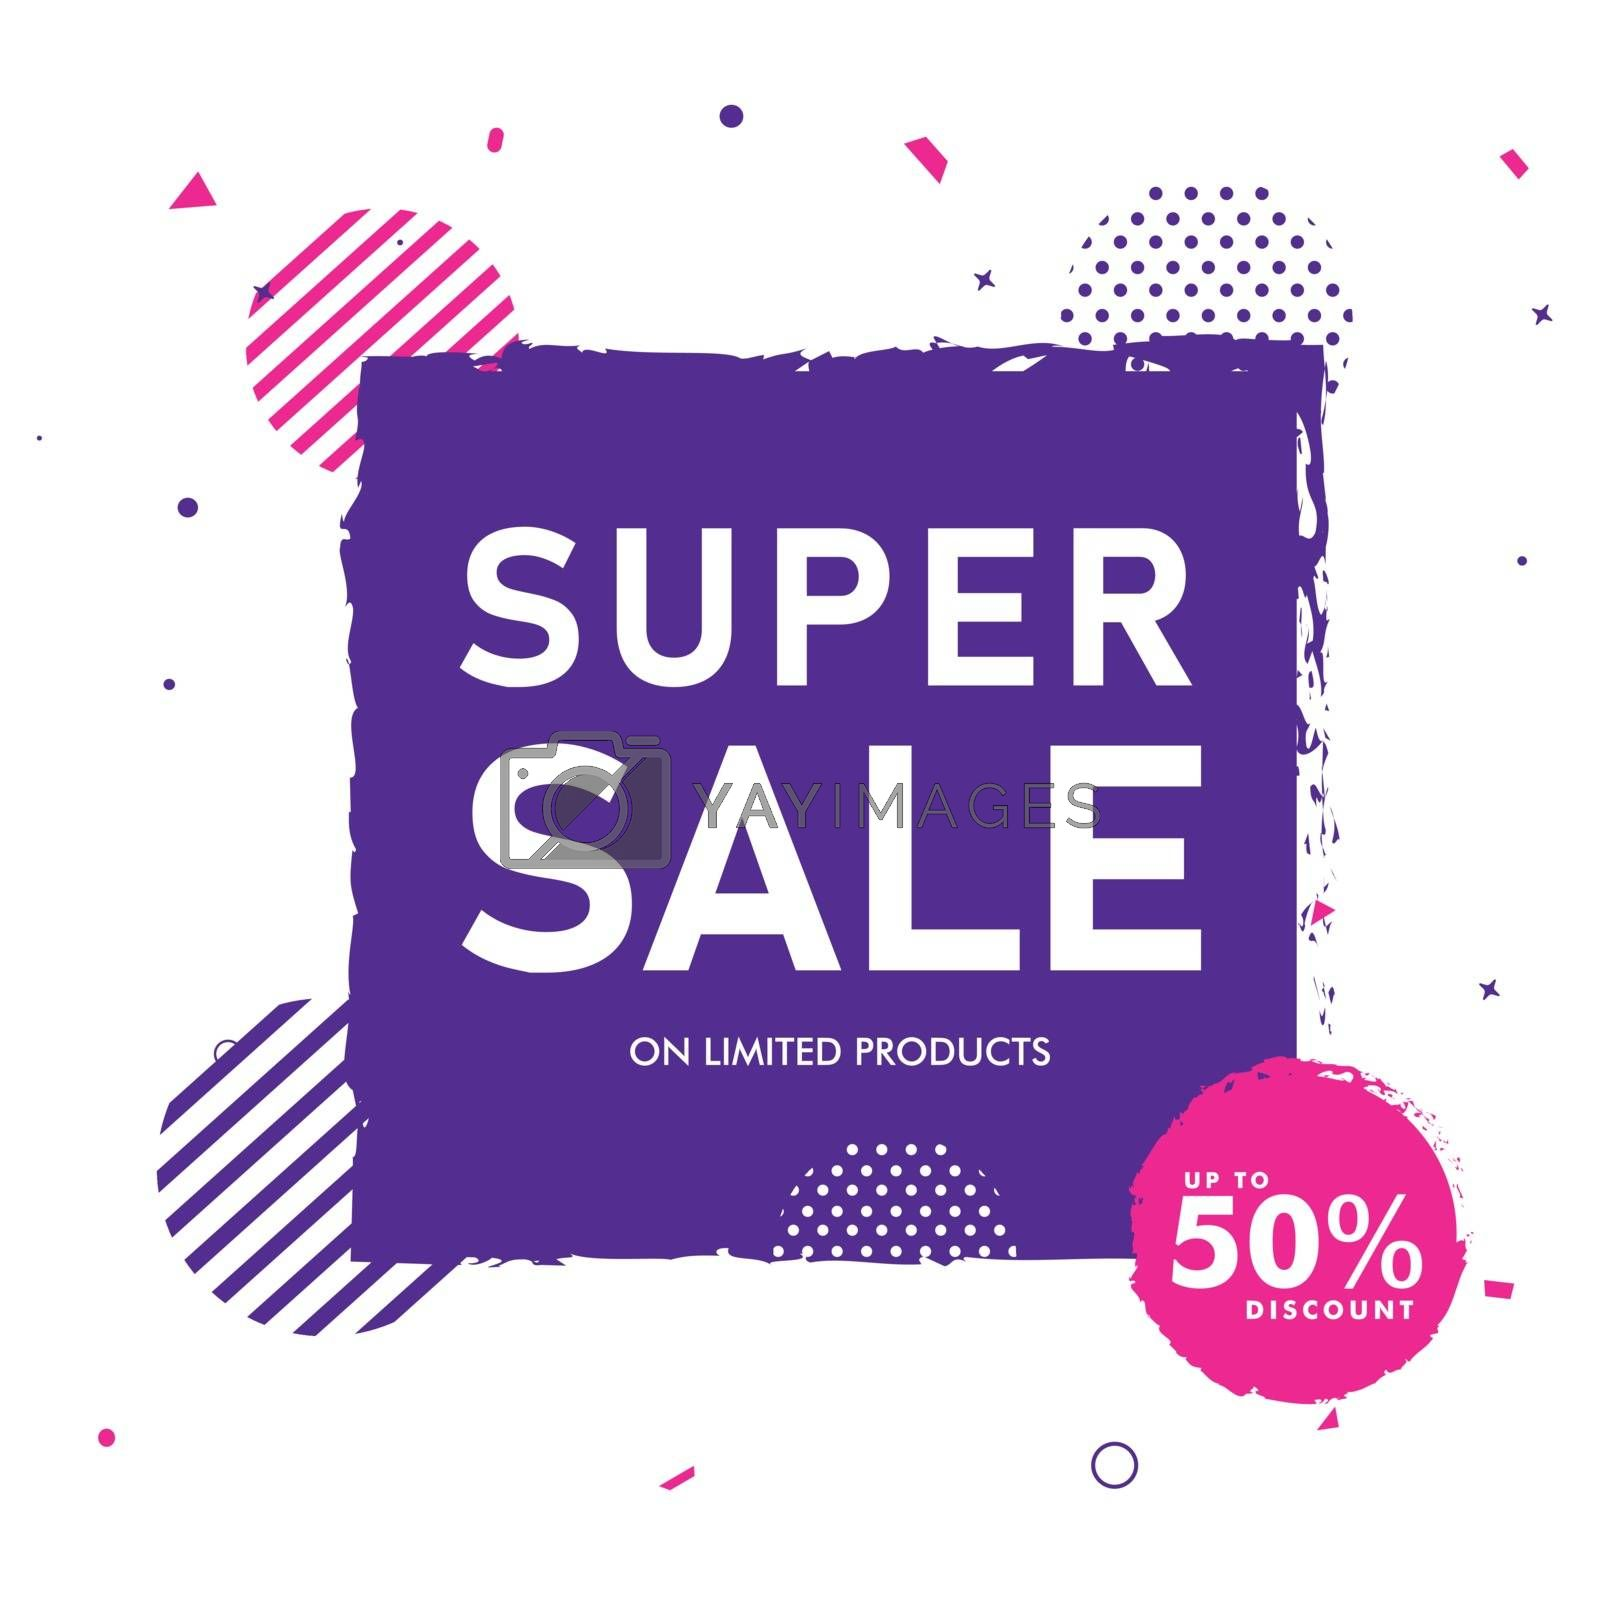 Royalty free image of Super sale banner or poster design in flat style with 50% discou by aispl